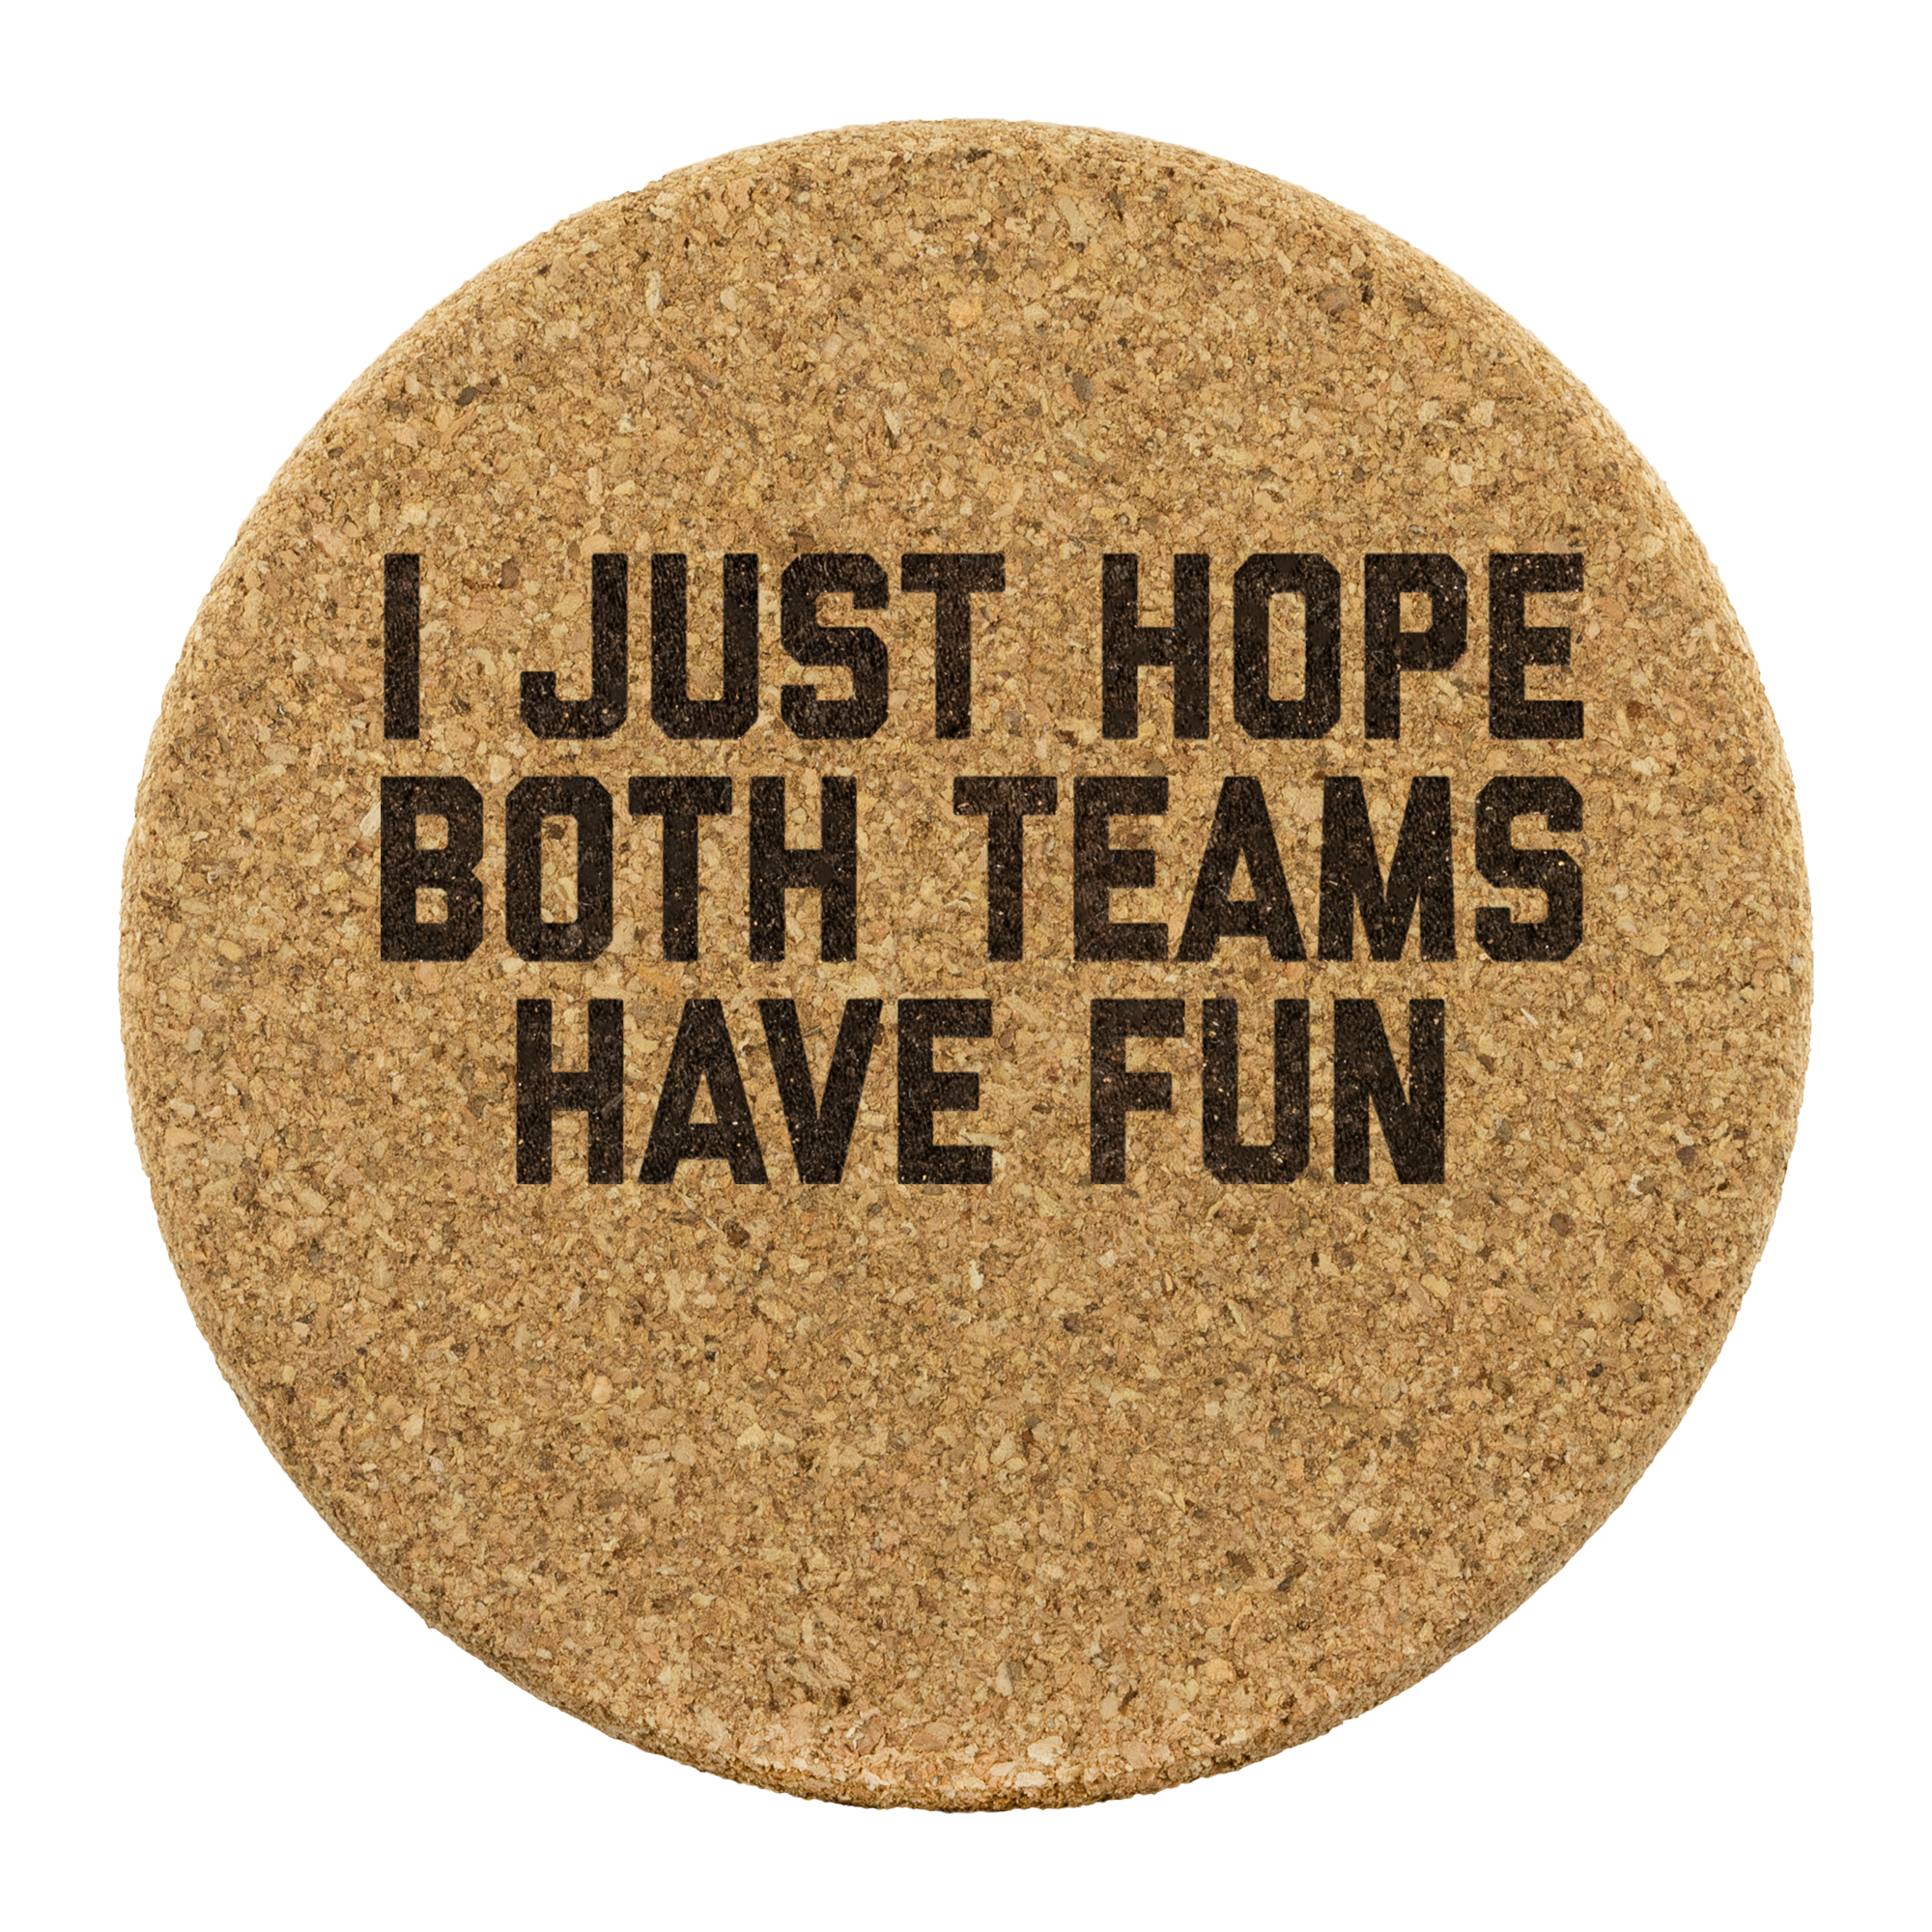 I Just Hope Both Teams Have Fun Round Cork Coasters